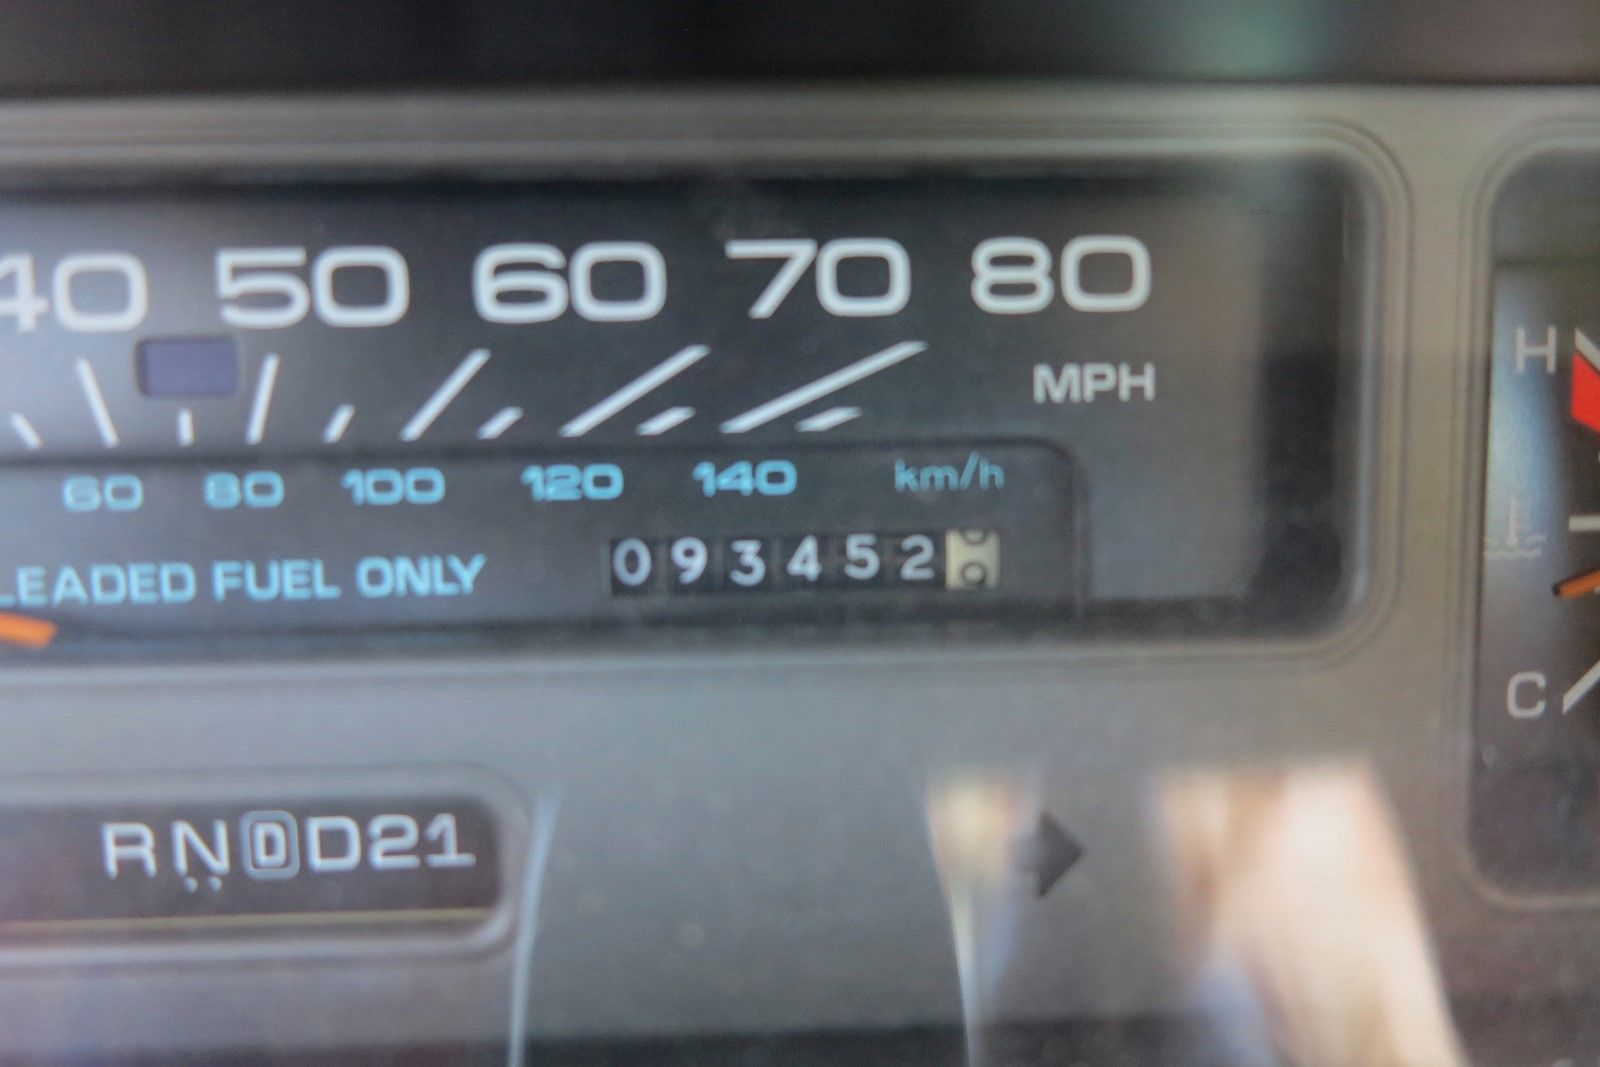 1991 Chevrolet Caprice Classic Wagon odometer